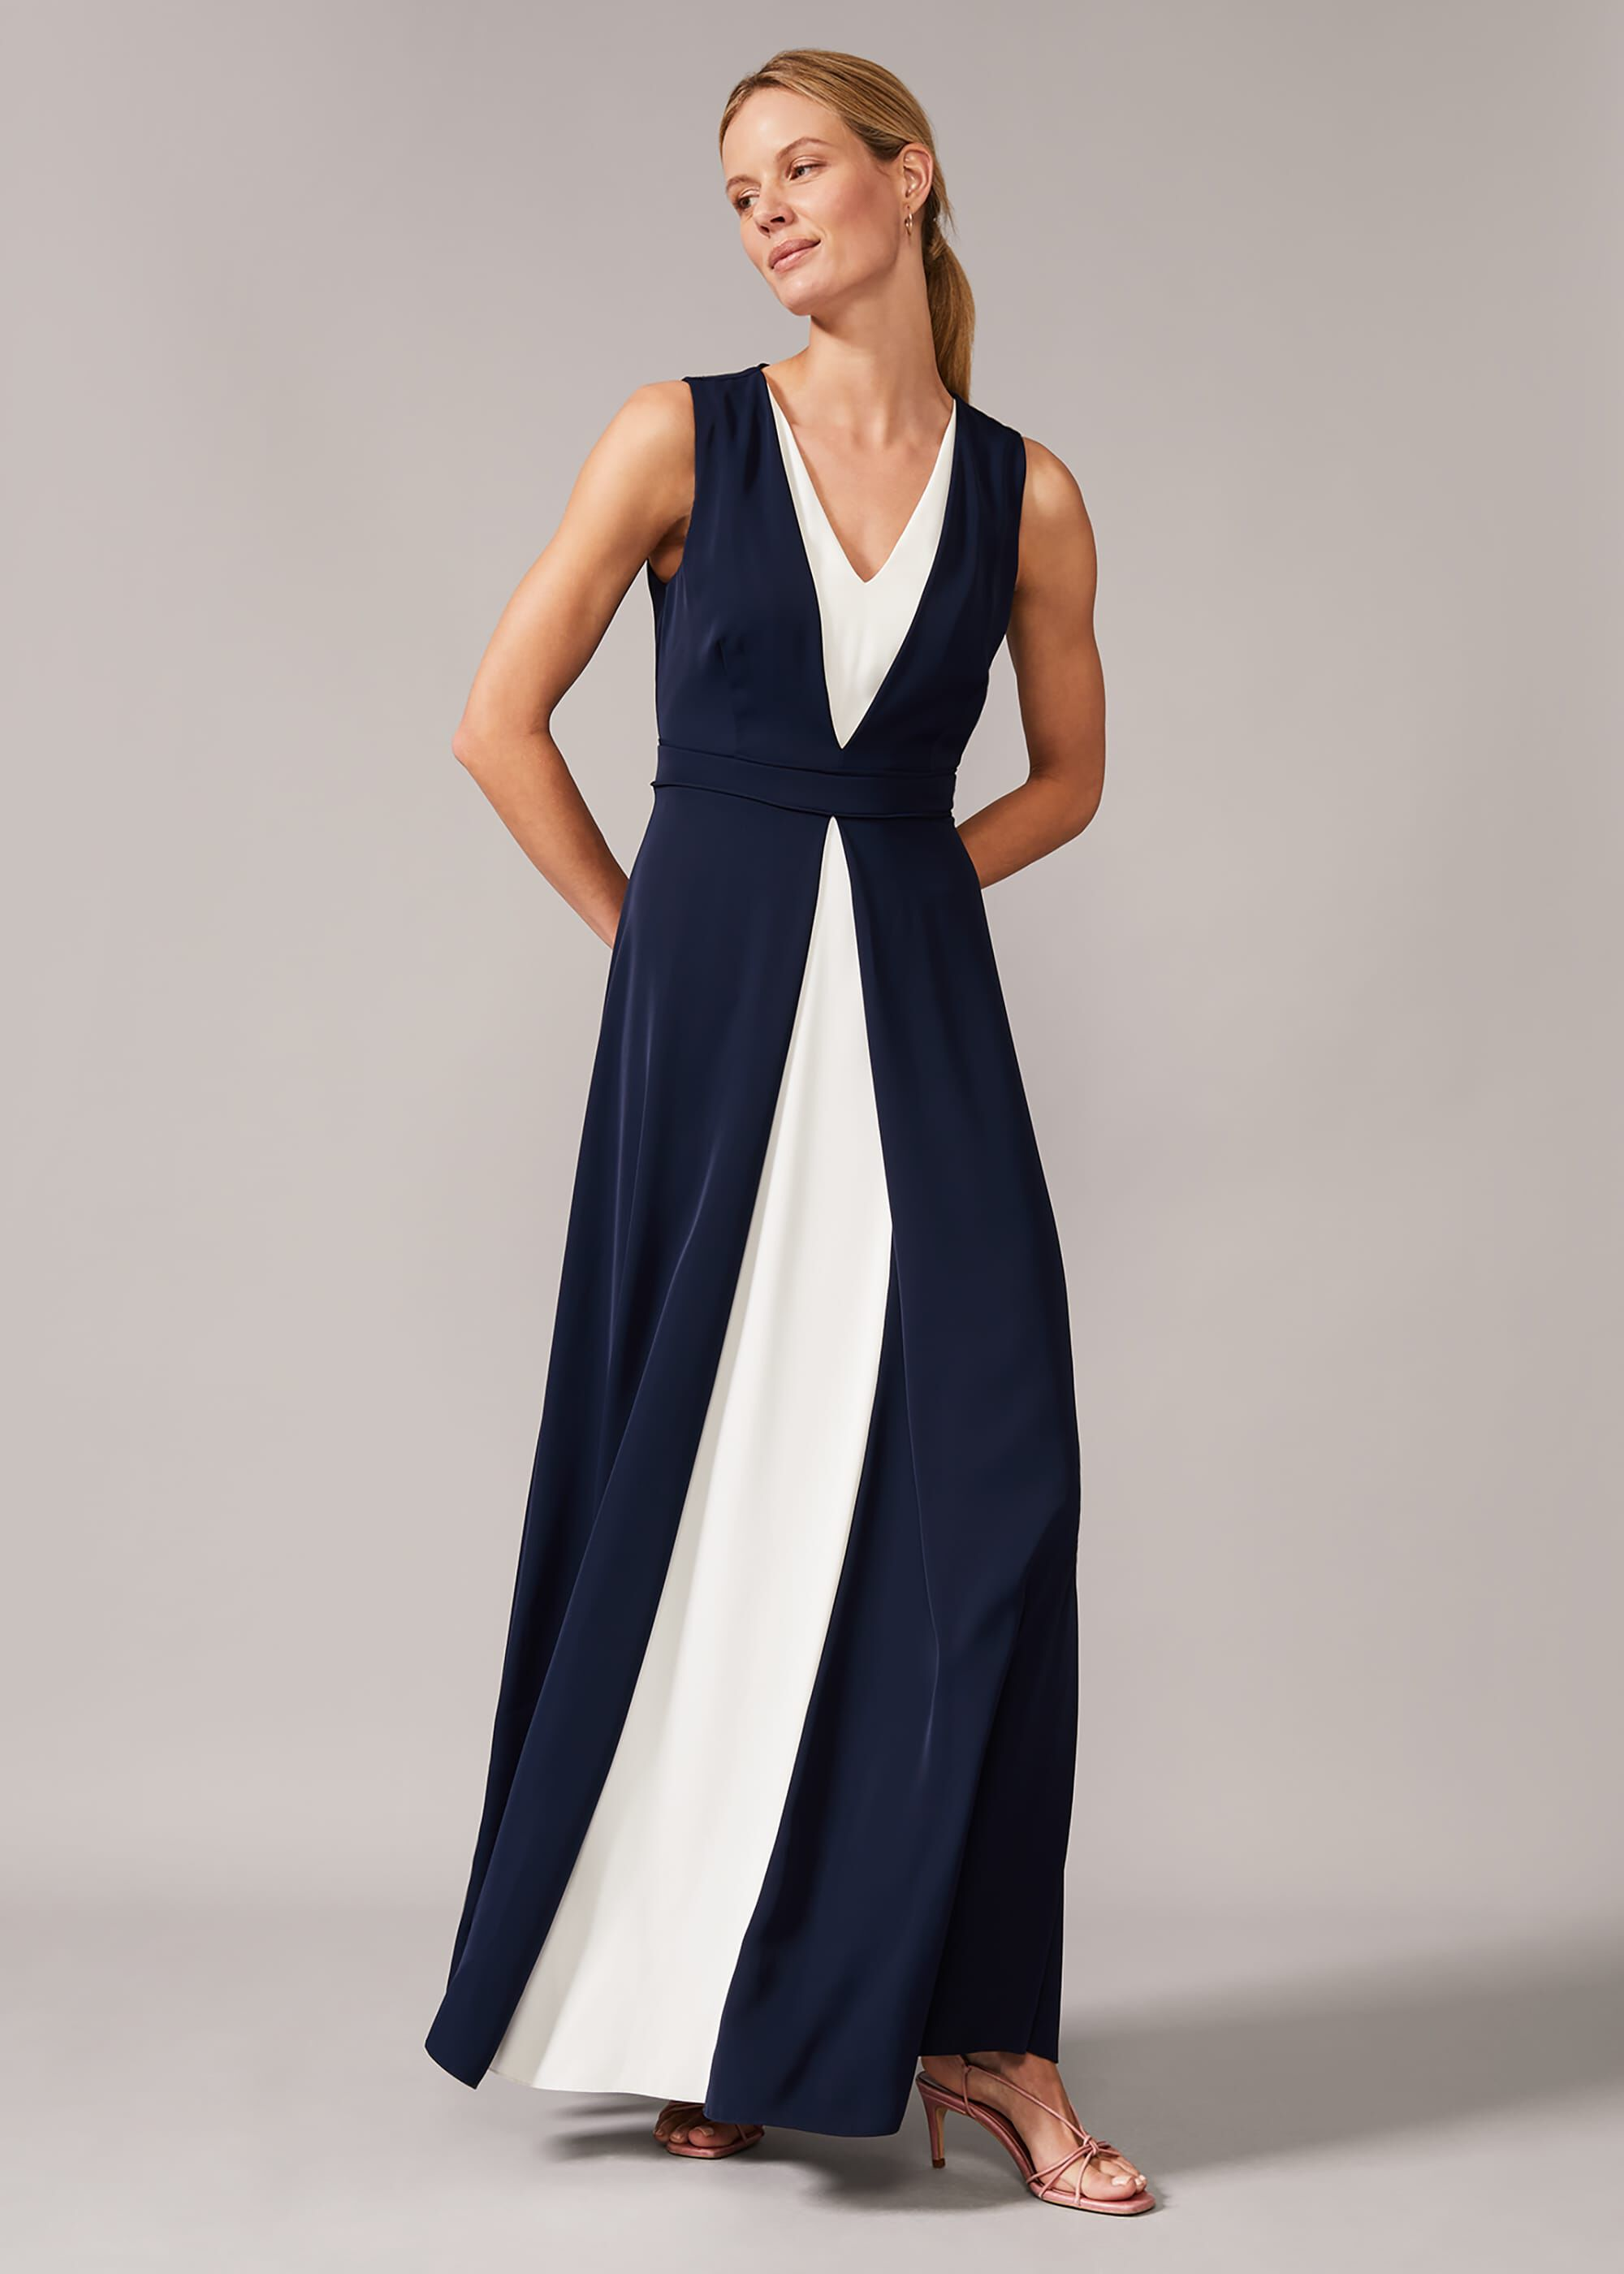 Phase Eight Addy Contrast Maxi Dress, Blue, Maxi